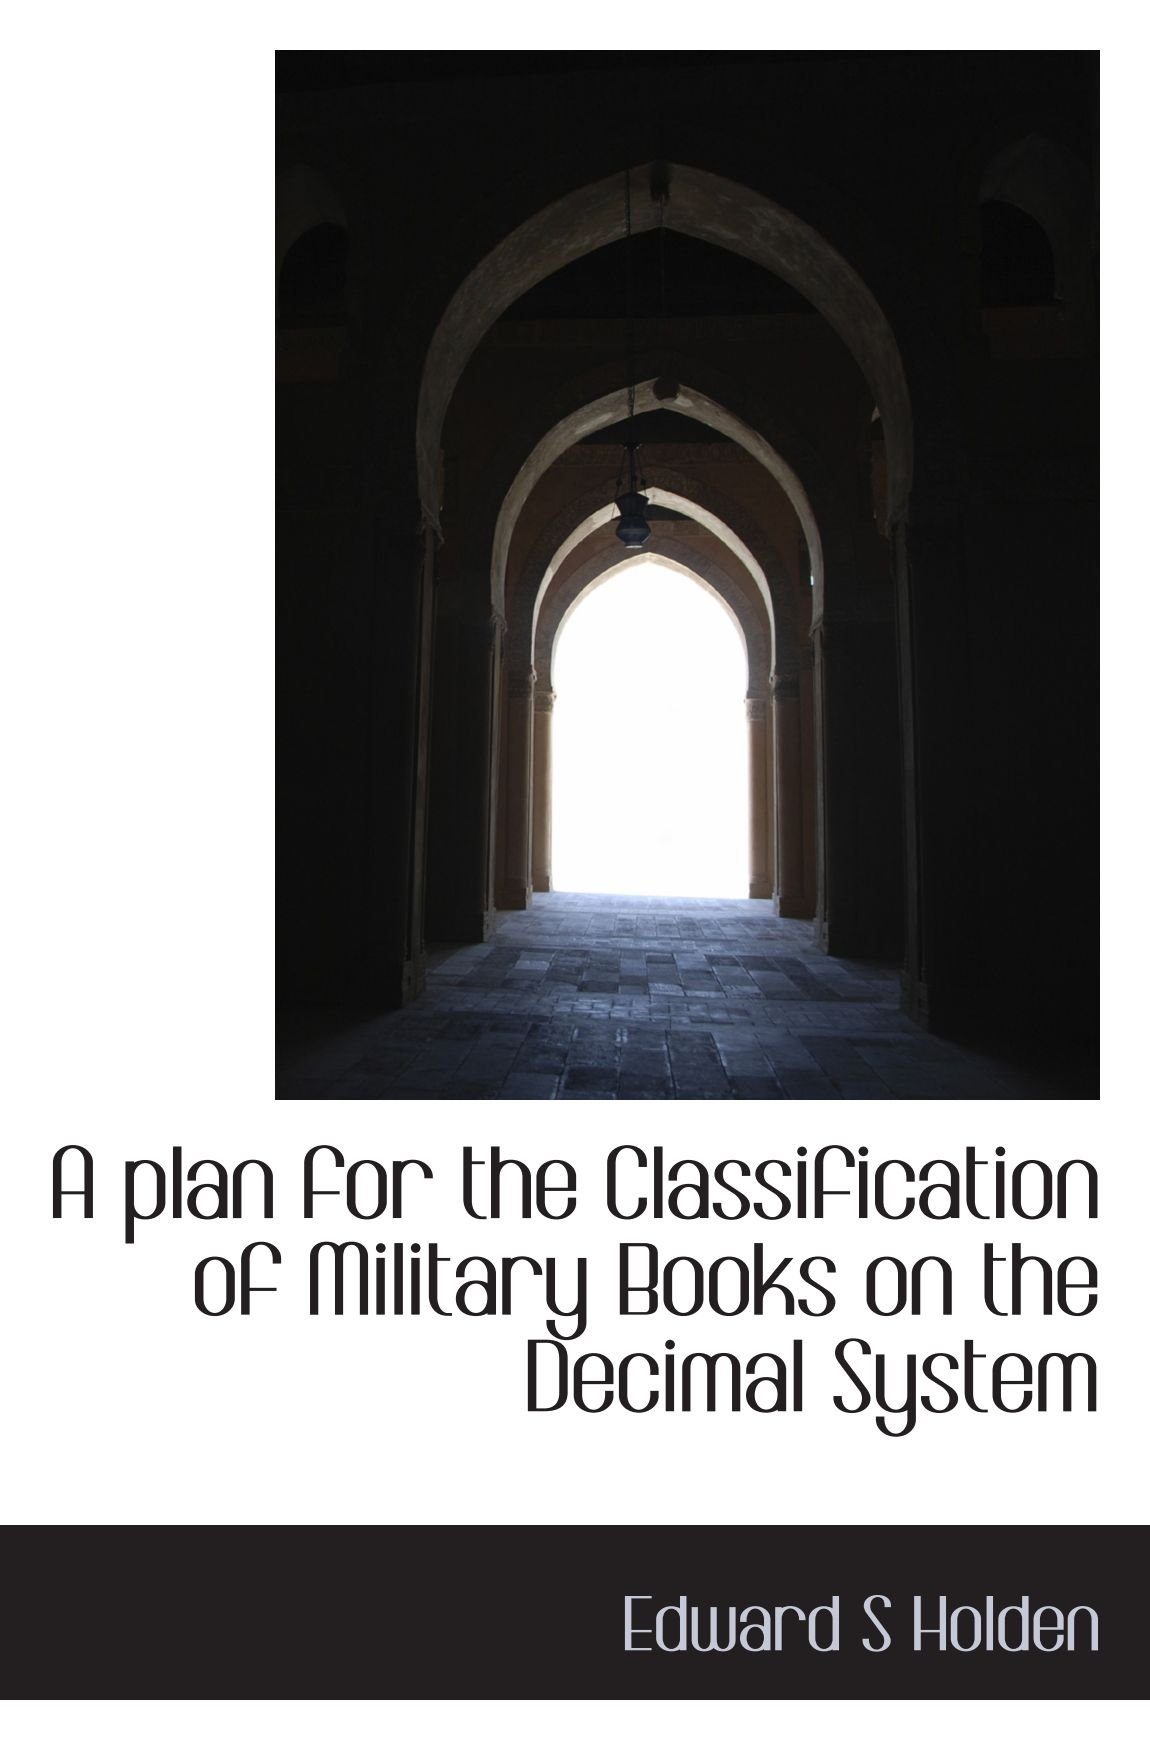 Download A plan for the Classification of Military Books on the Decimal System ebook